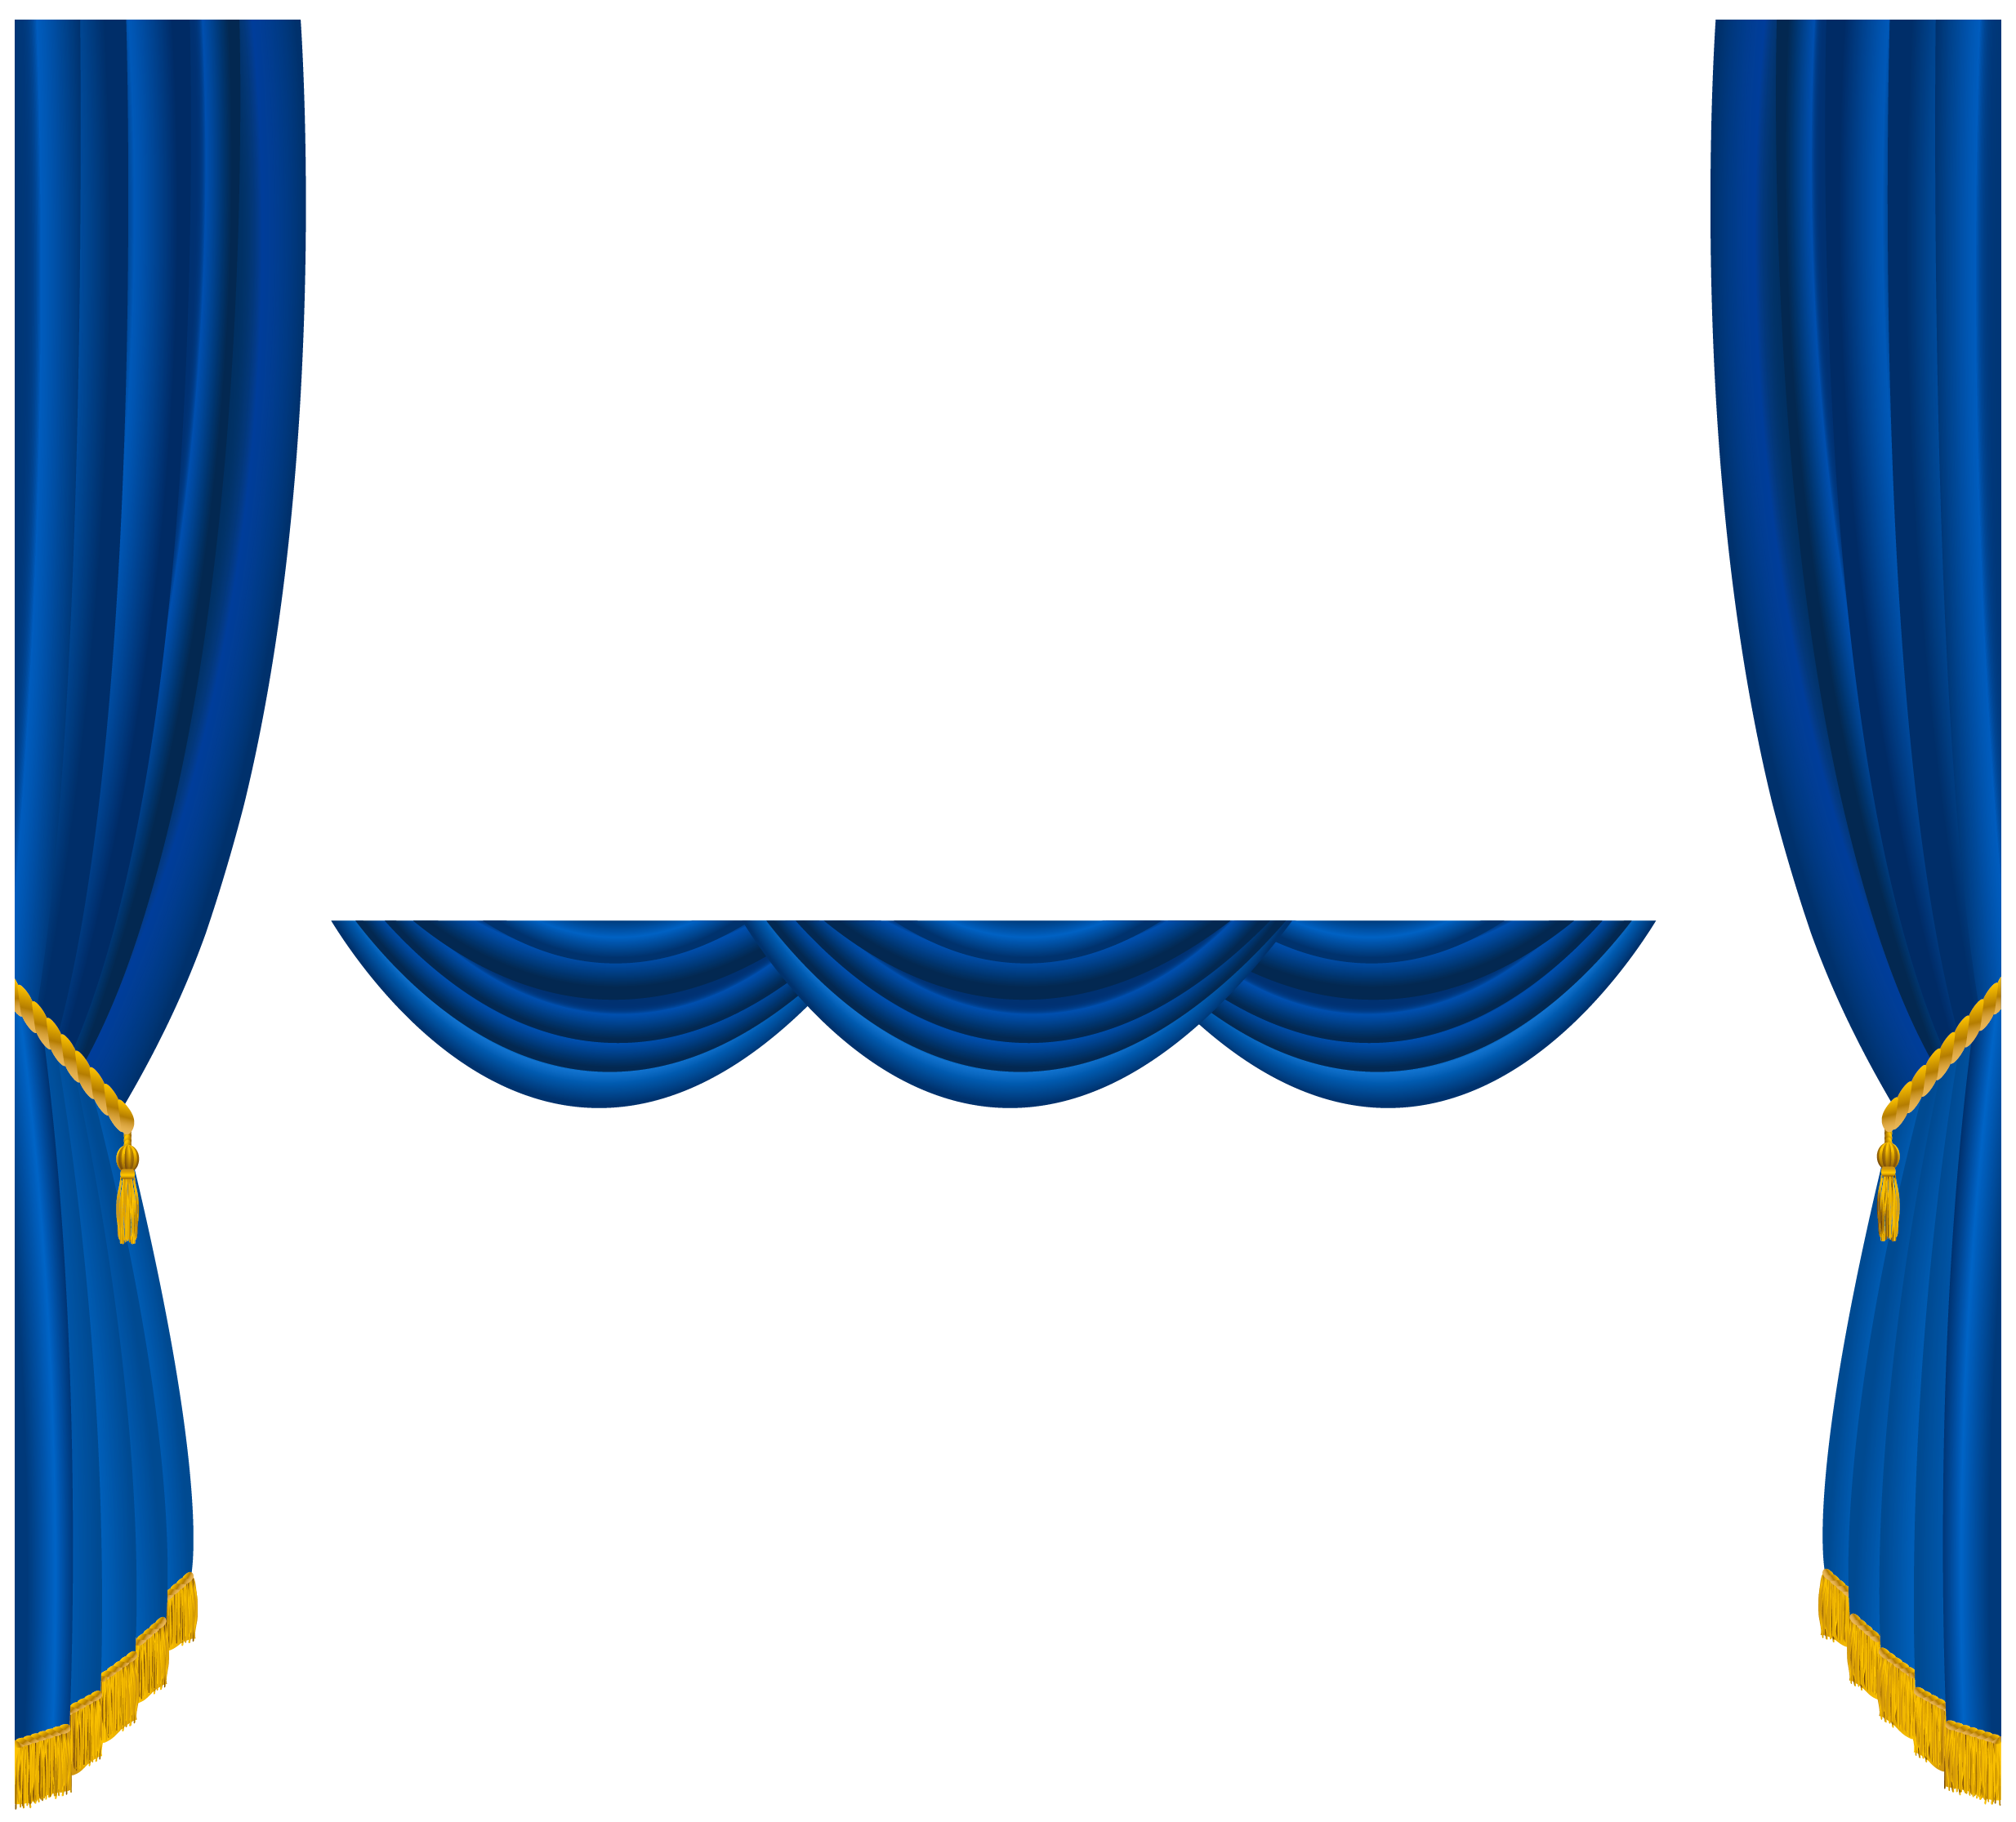 Curtain clipart blue curtain. Transparent curtains decoration png